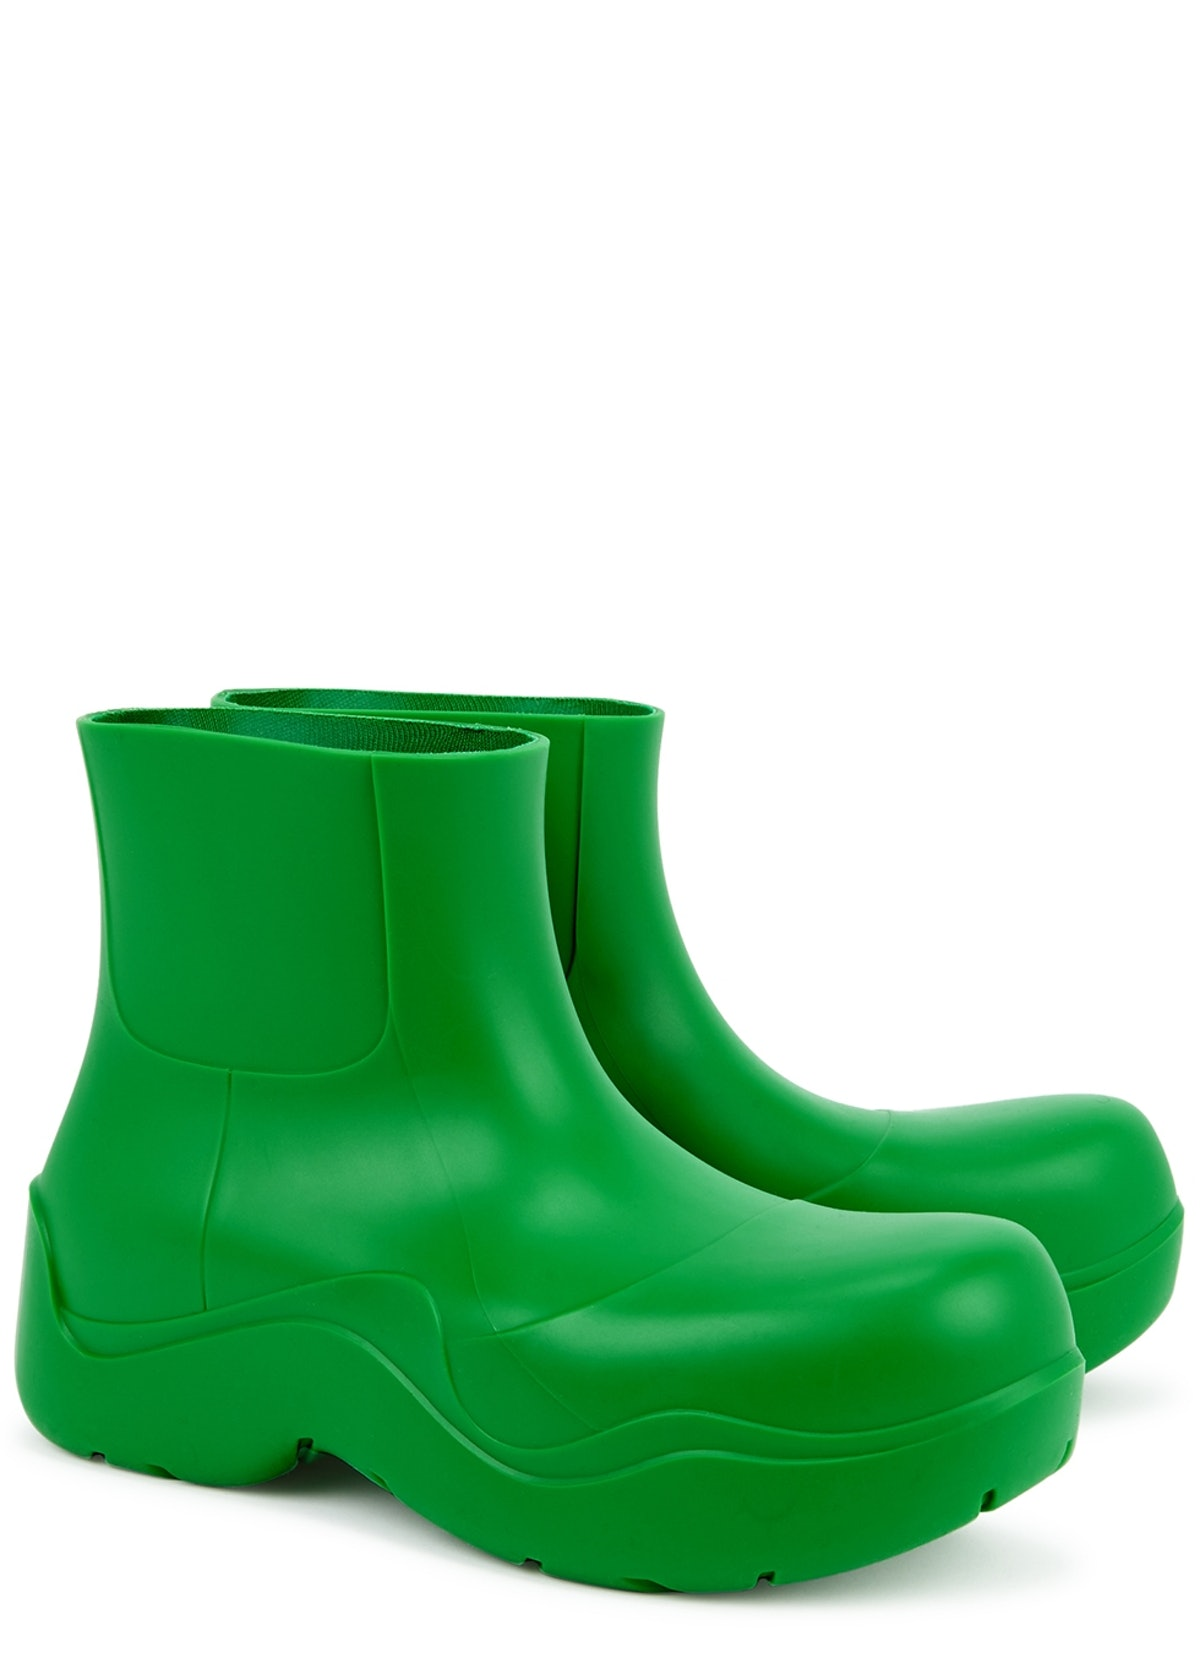 Puddle green rubber ankle boots: additional image